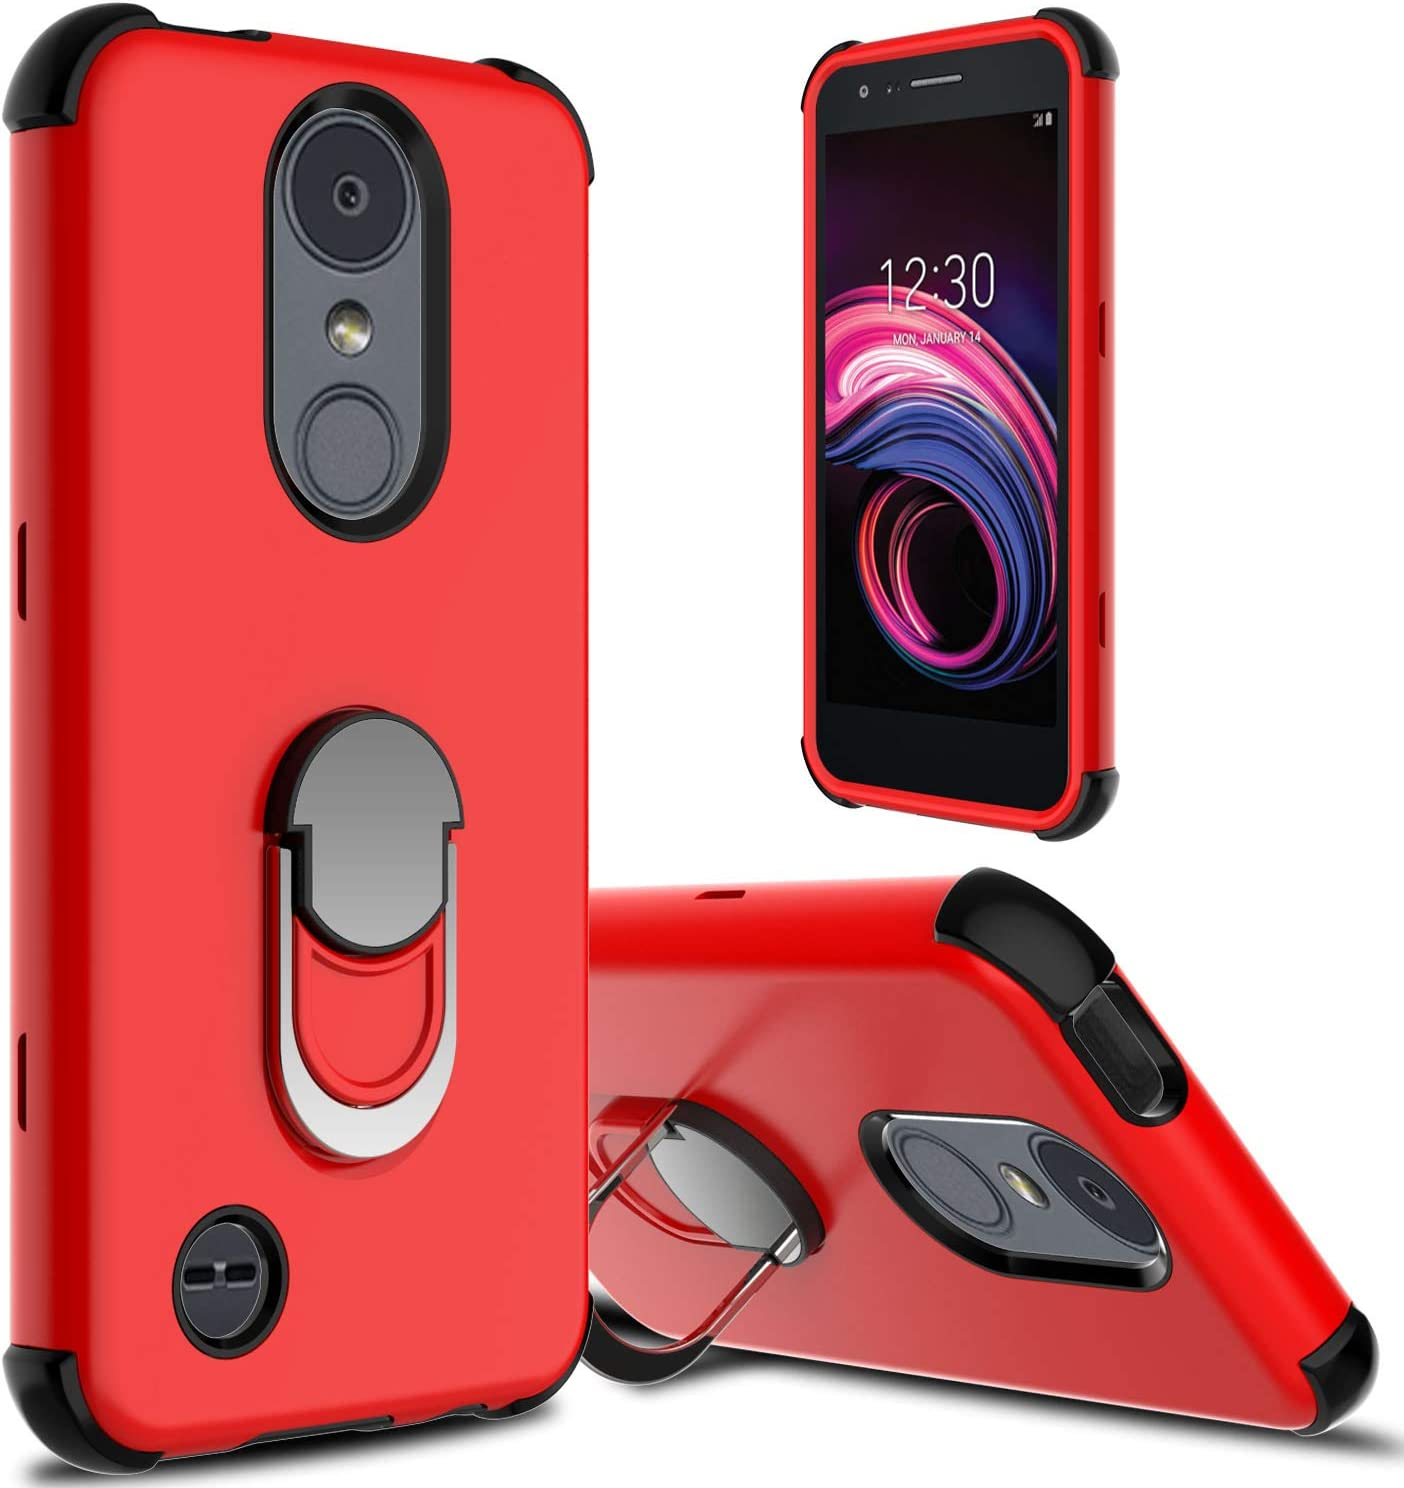 LG Aristo 3 Case, LG Aristo 2/Aristo 2 Plus/LG Tribute Empire Case, lovpec Ring Magnetic Holder Kickstand Phone Case for LG Rebel 4 LTE/LG Phoenix 4/LG Tribute Dynasty/Zone 4/Fortune 2/Risio 3 (Red)